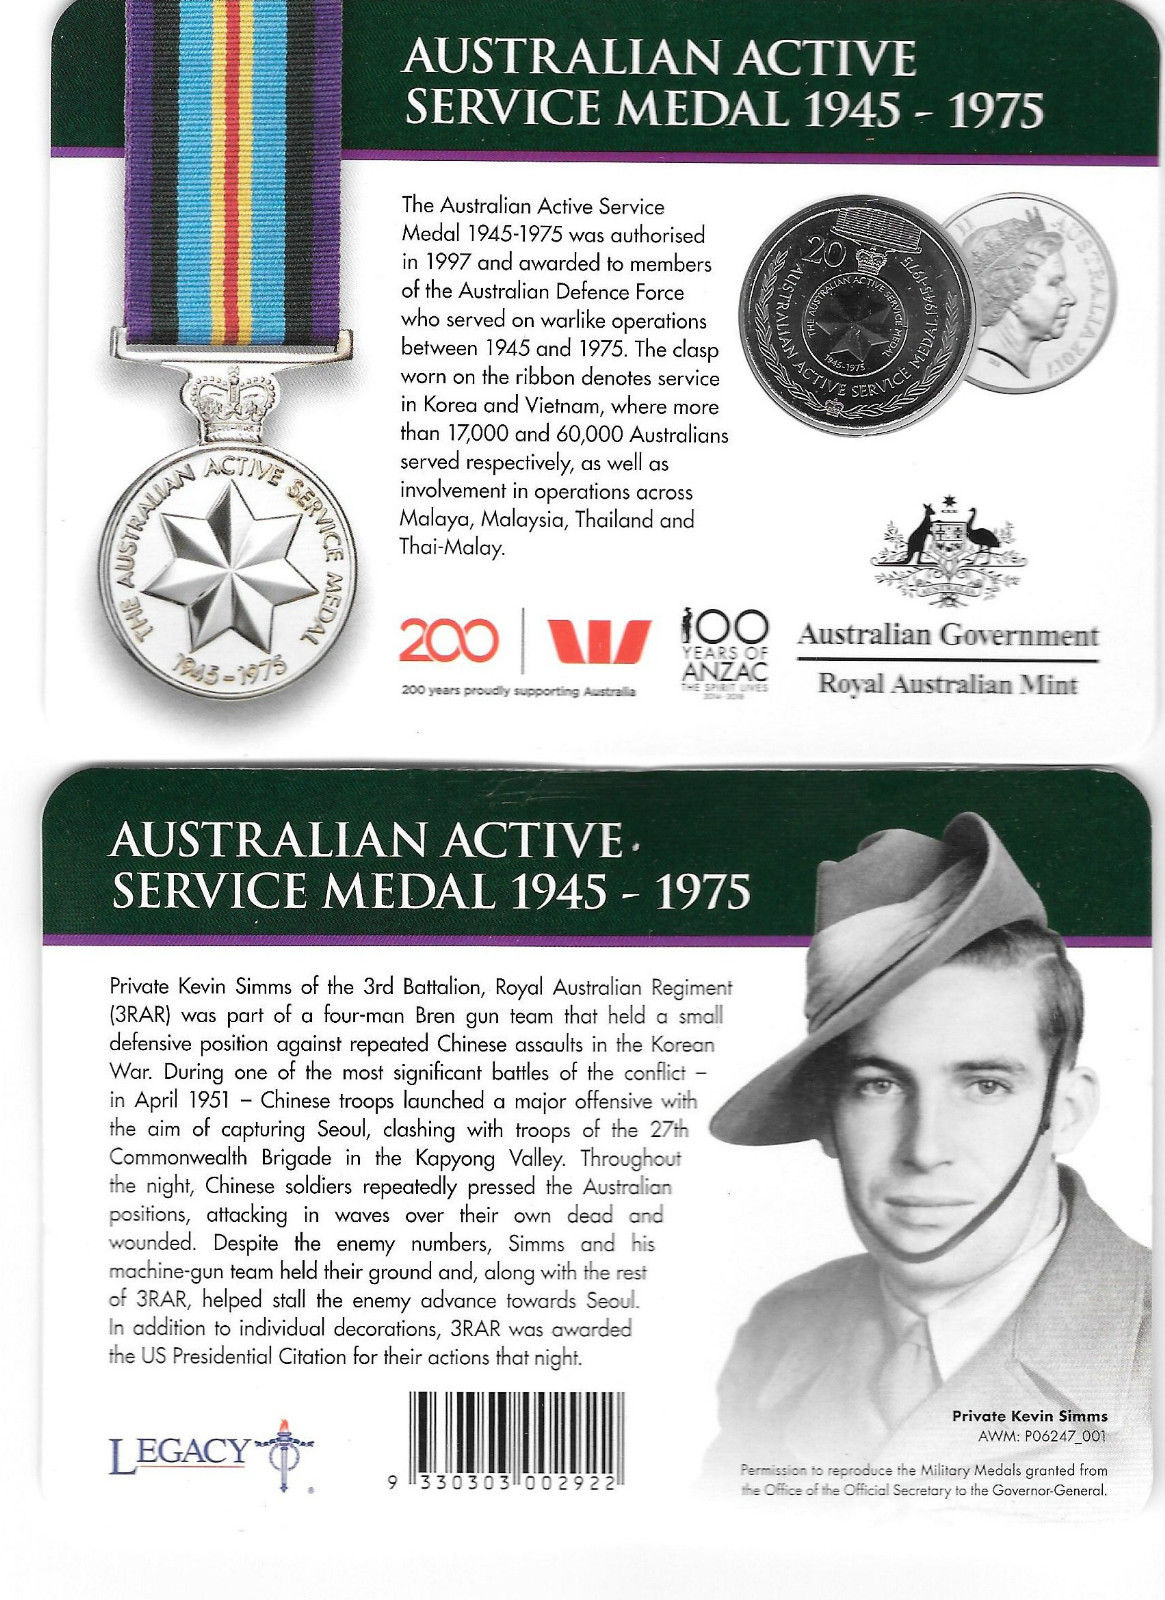 Thumbnail for 2017 Legends of the ANZACS - Australian Active Service Medal 1945-1975